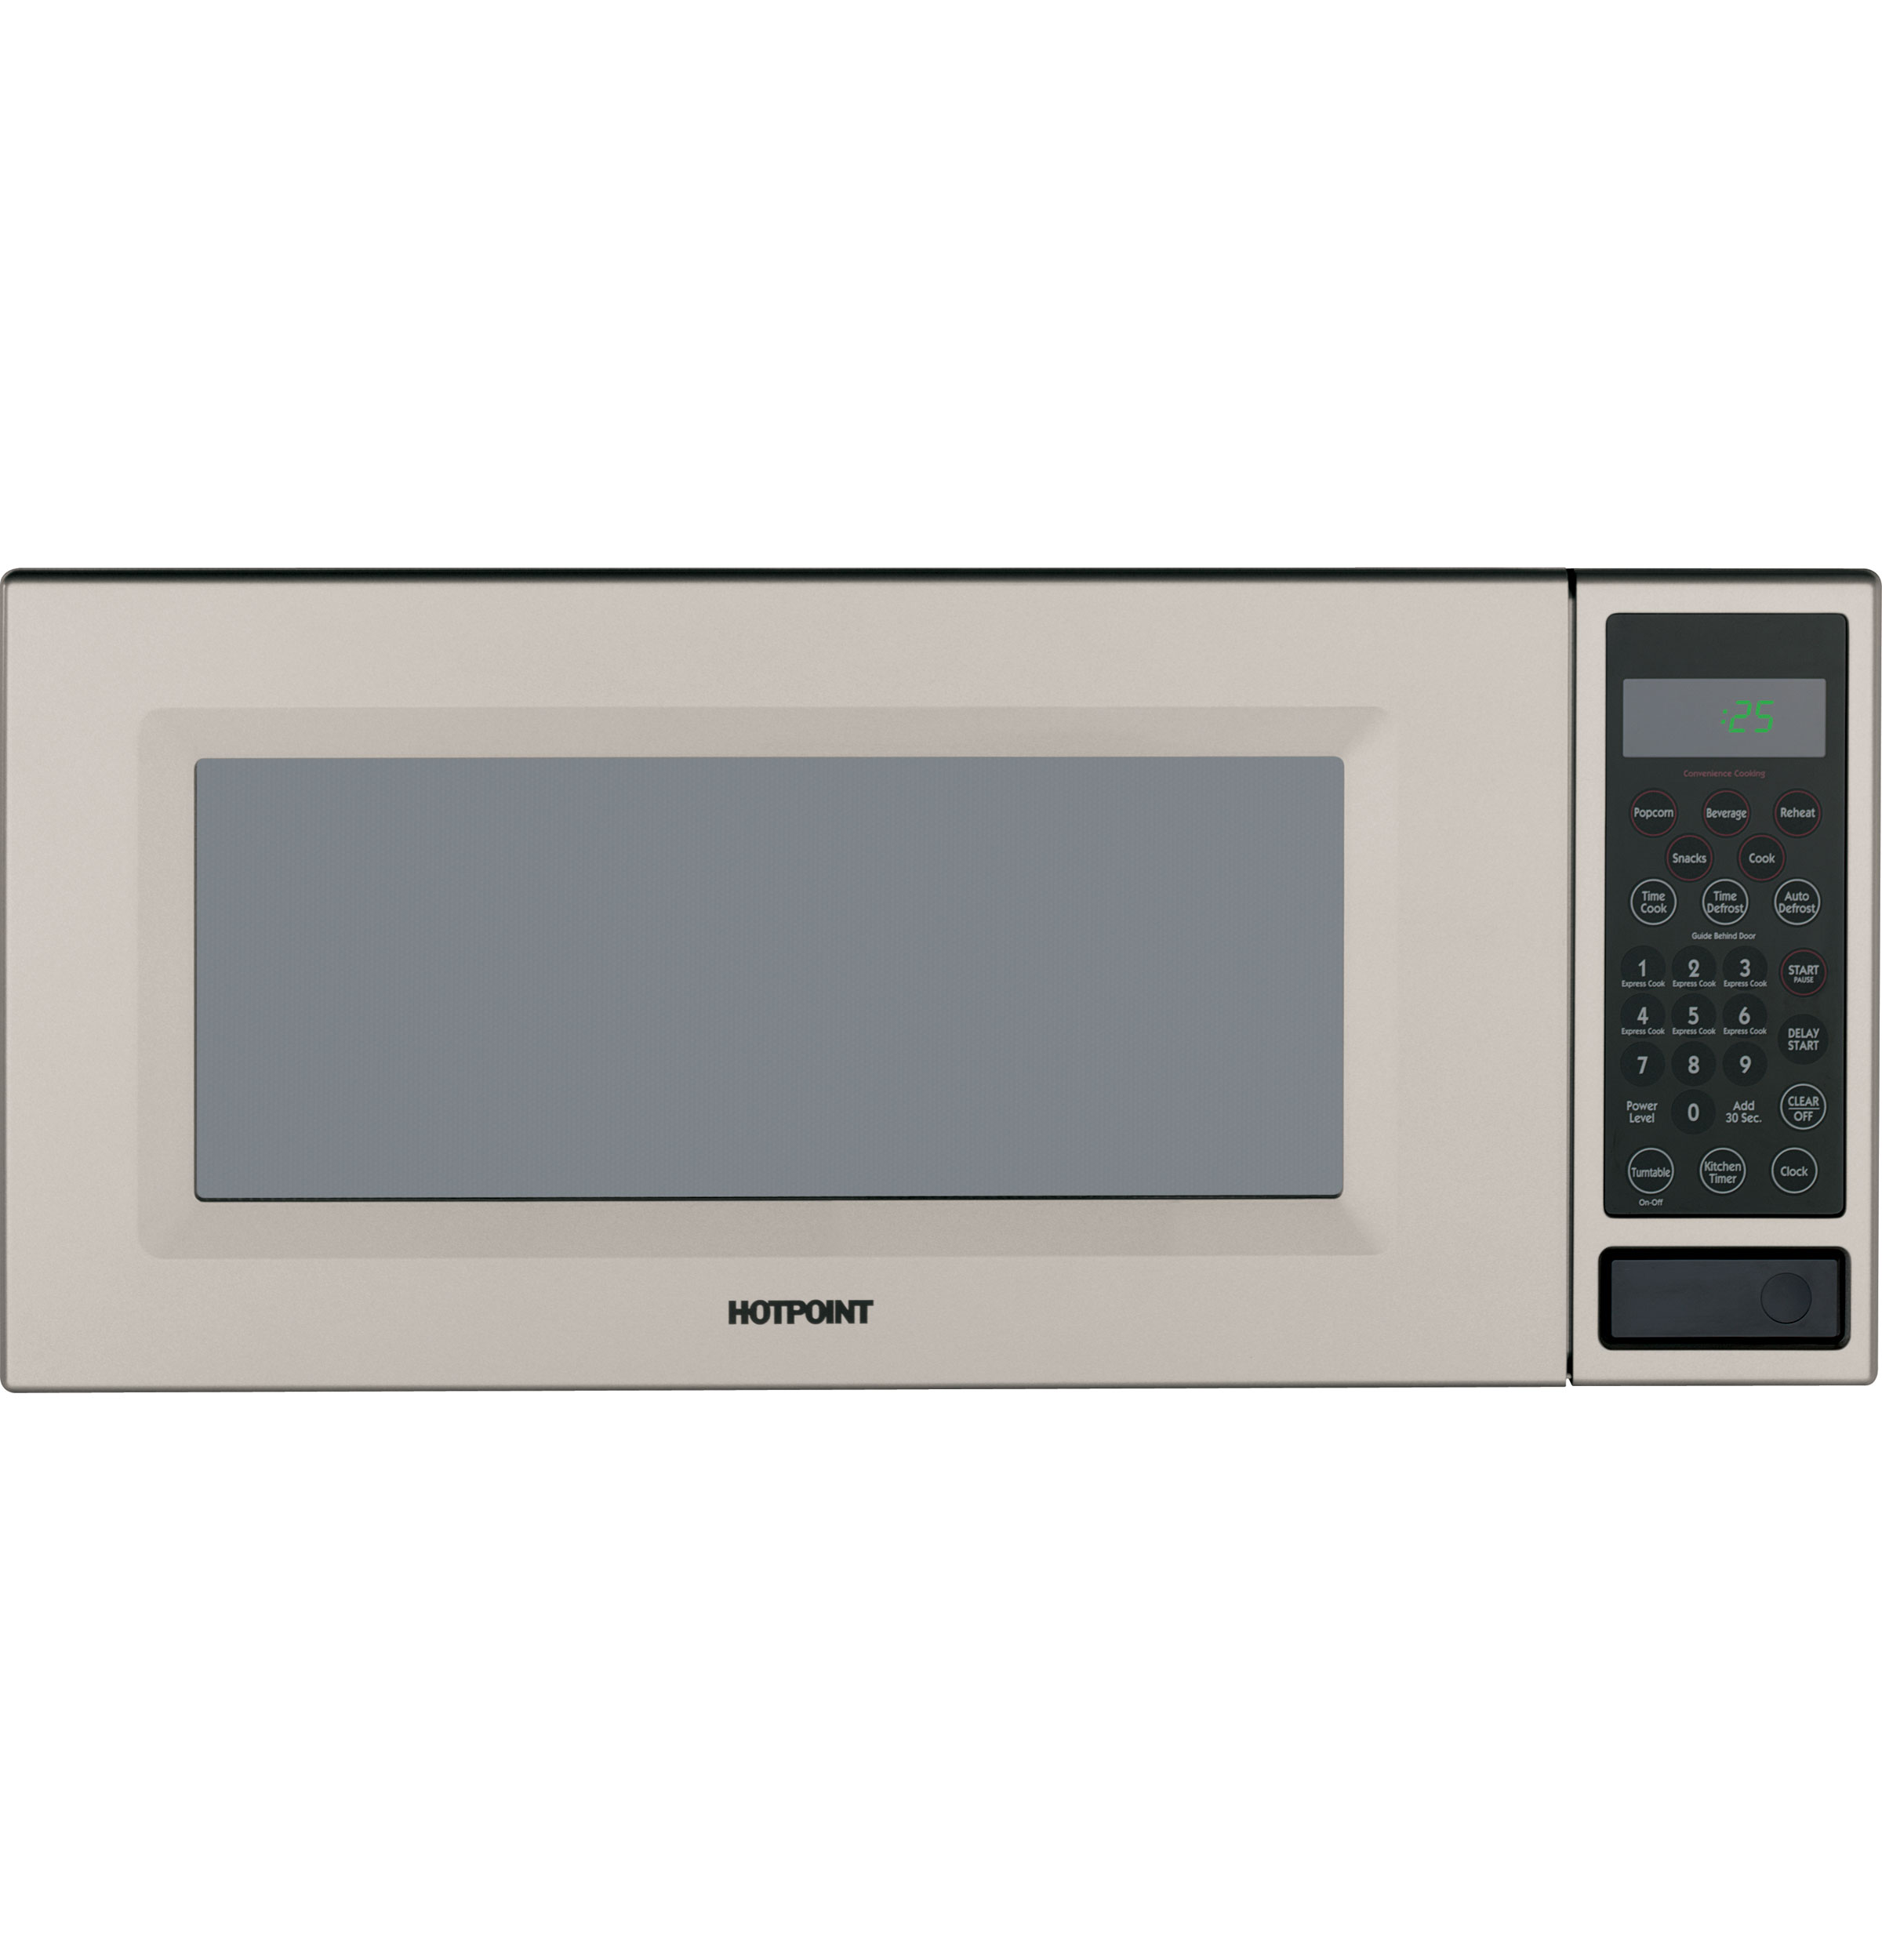 Hotpoint Rem25sj Countertop Microwave Oven